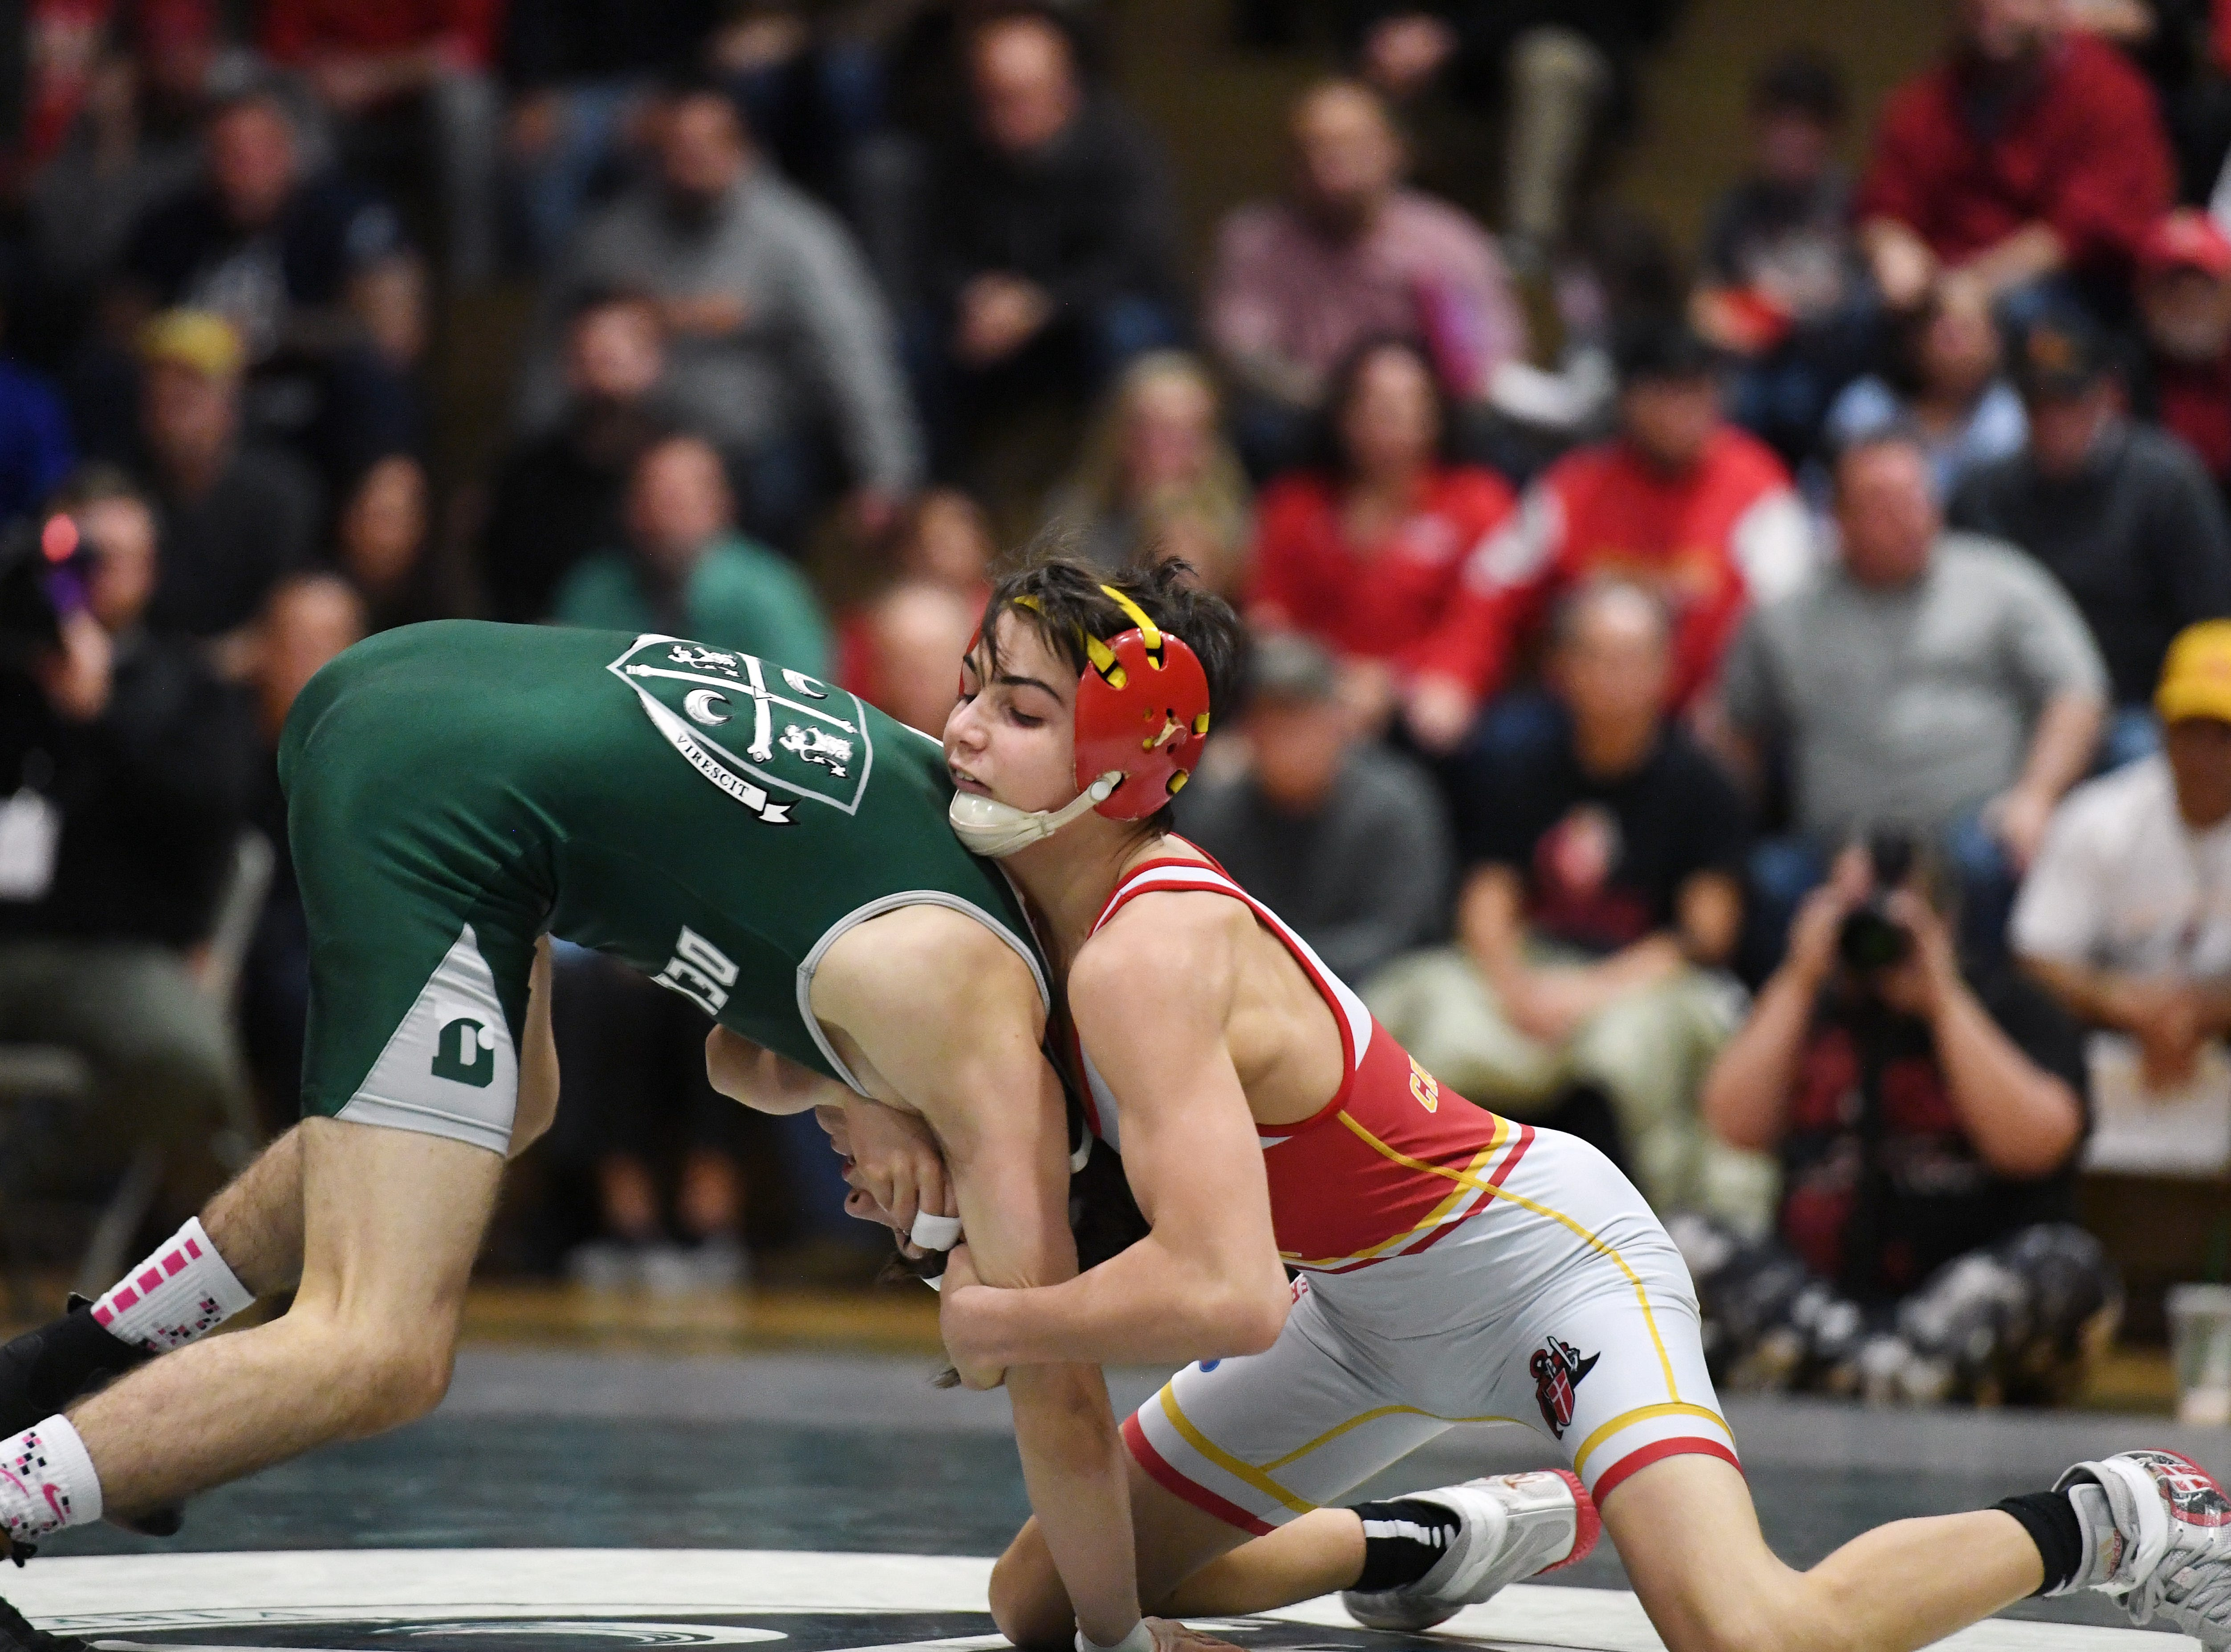 Bergen Catholic wrestling at Delbarton on Friday, February 8, 2019. (right) BC Joseph Cangro on his way to defeating D Thomas Fischer in their 106 pound match.